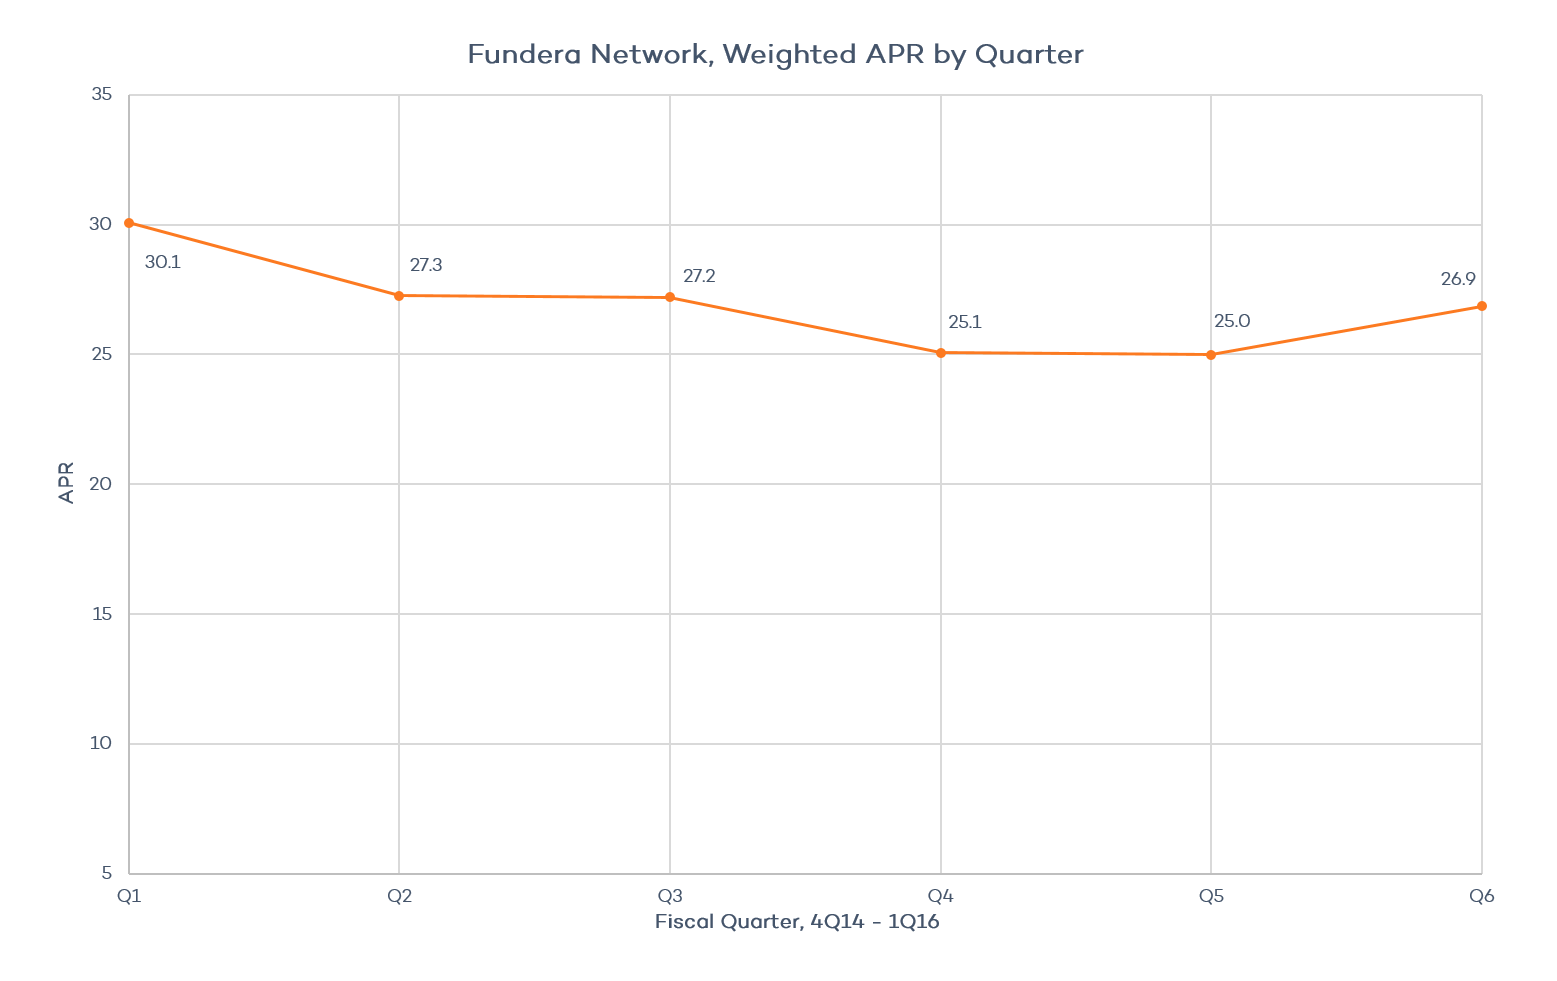 Fundera Network, Weighted APR by Quarter